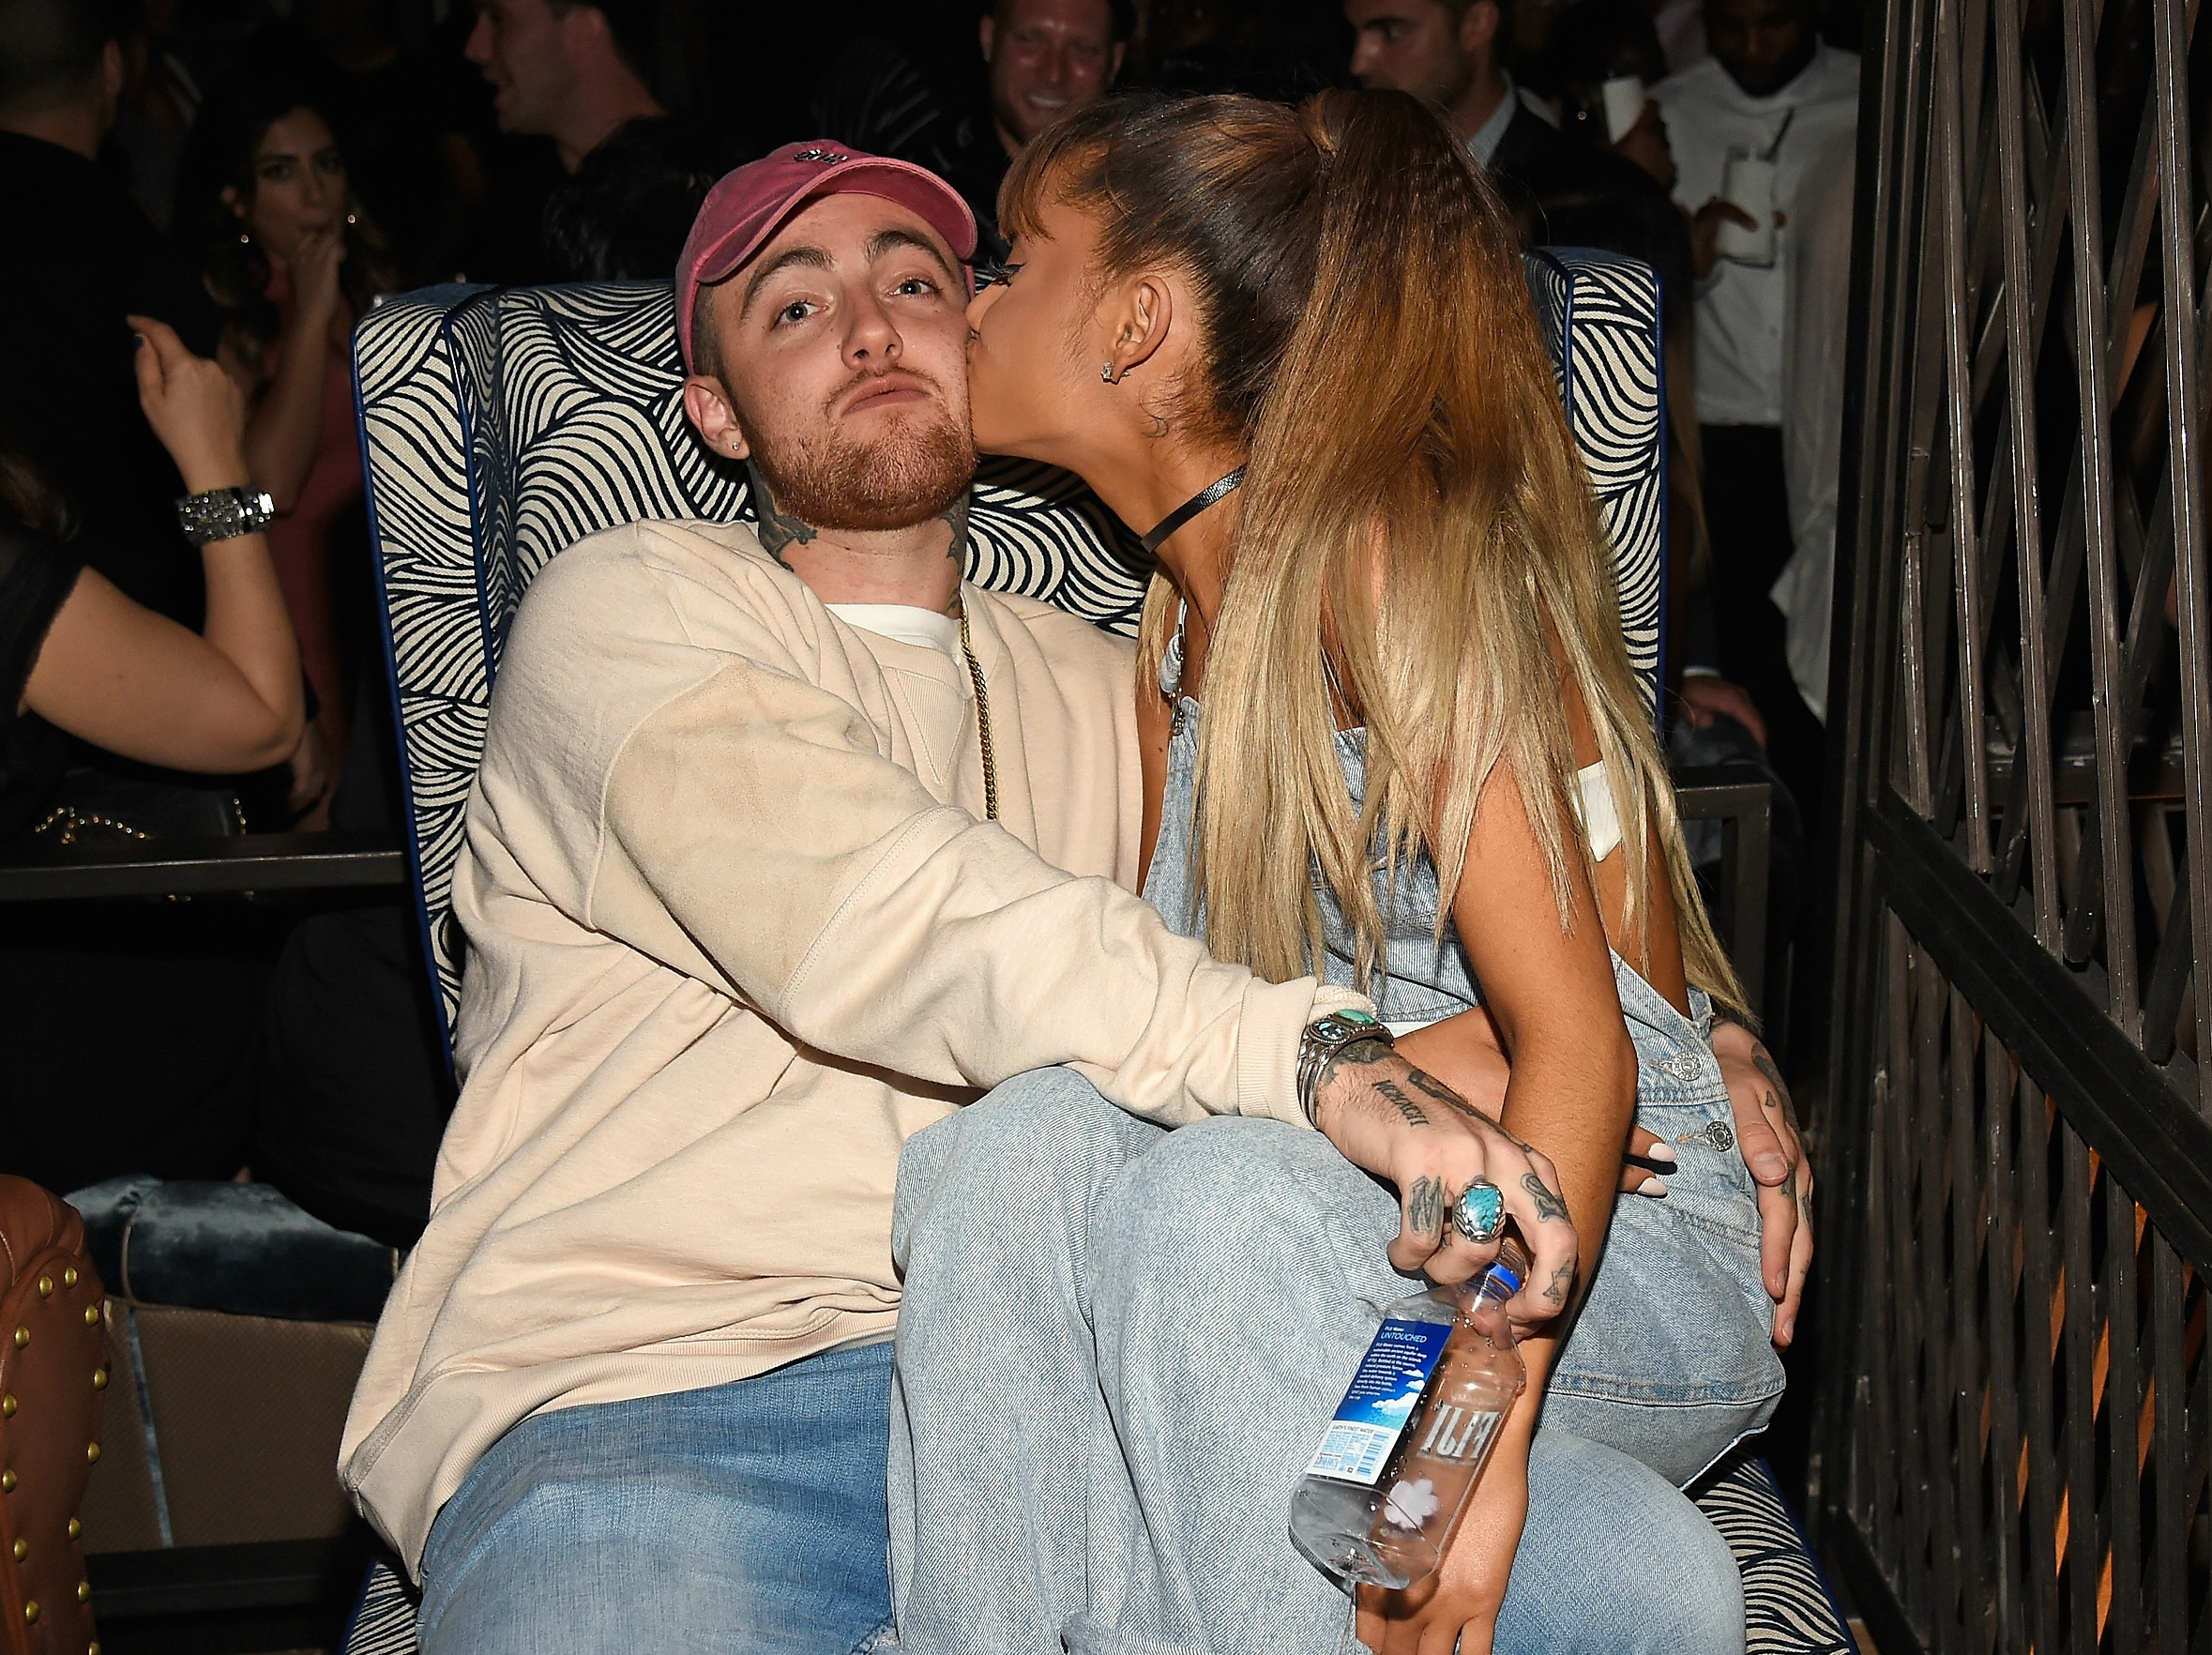 ariana grande lashes out over mac miller loss at grammys literal bulls t national globalnews ca over mac miller loss at grammys